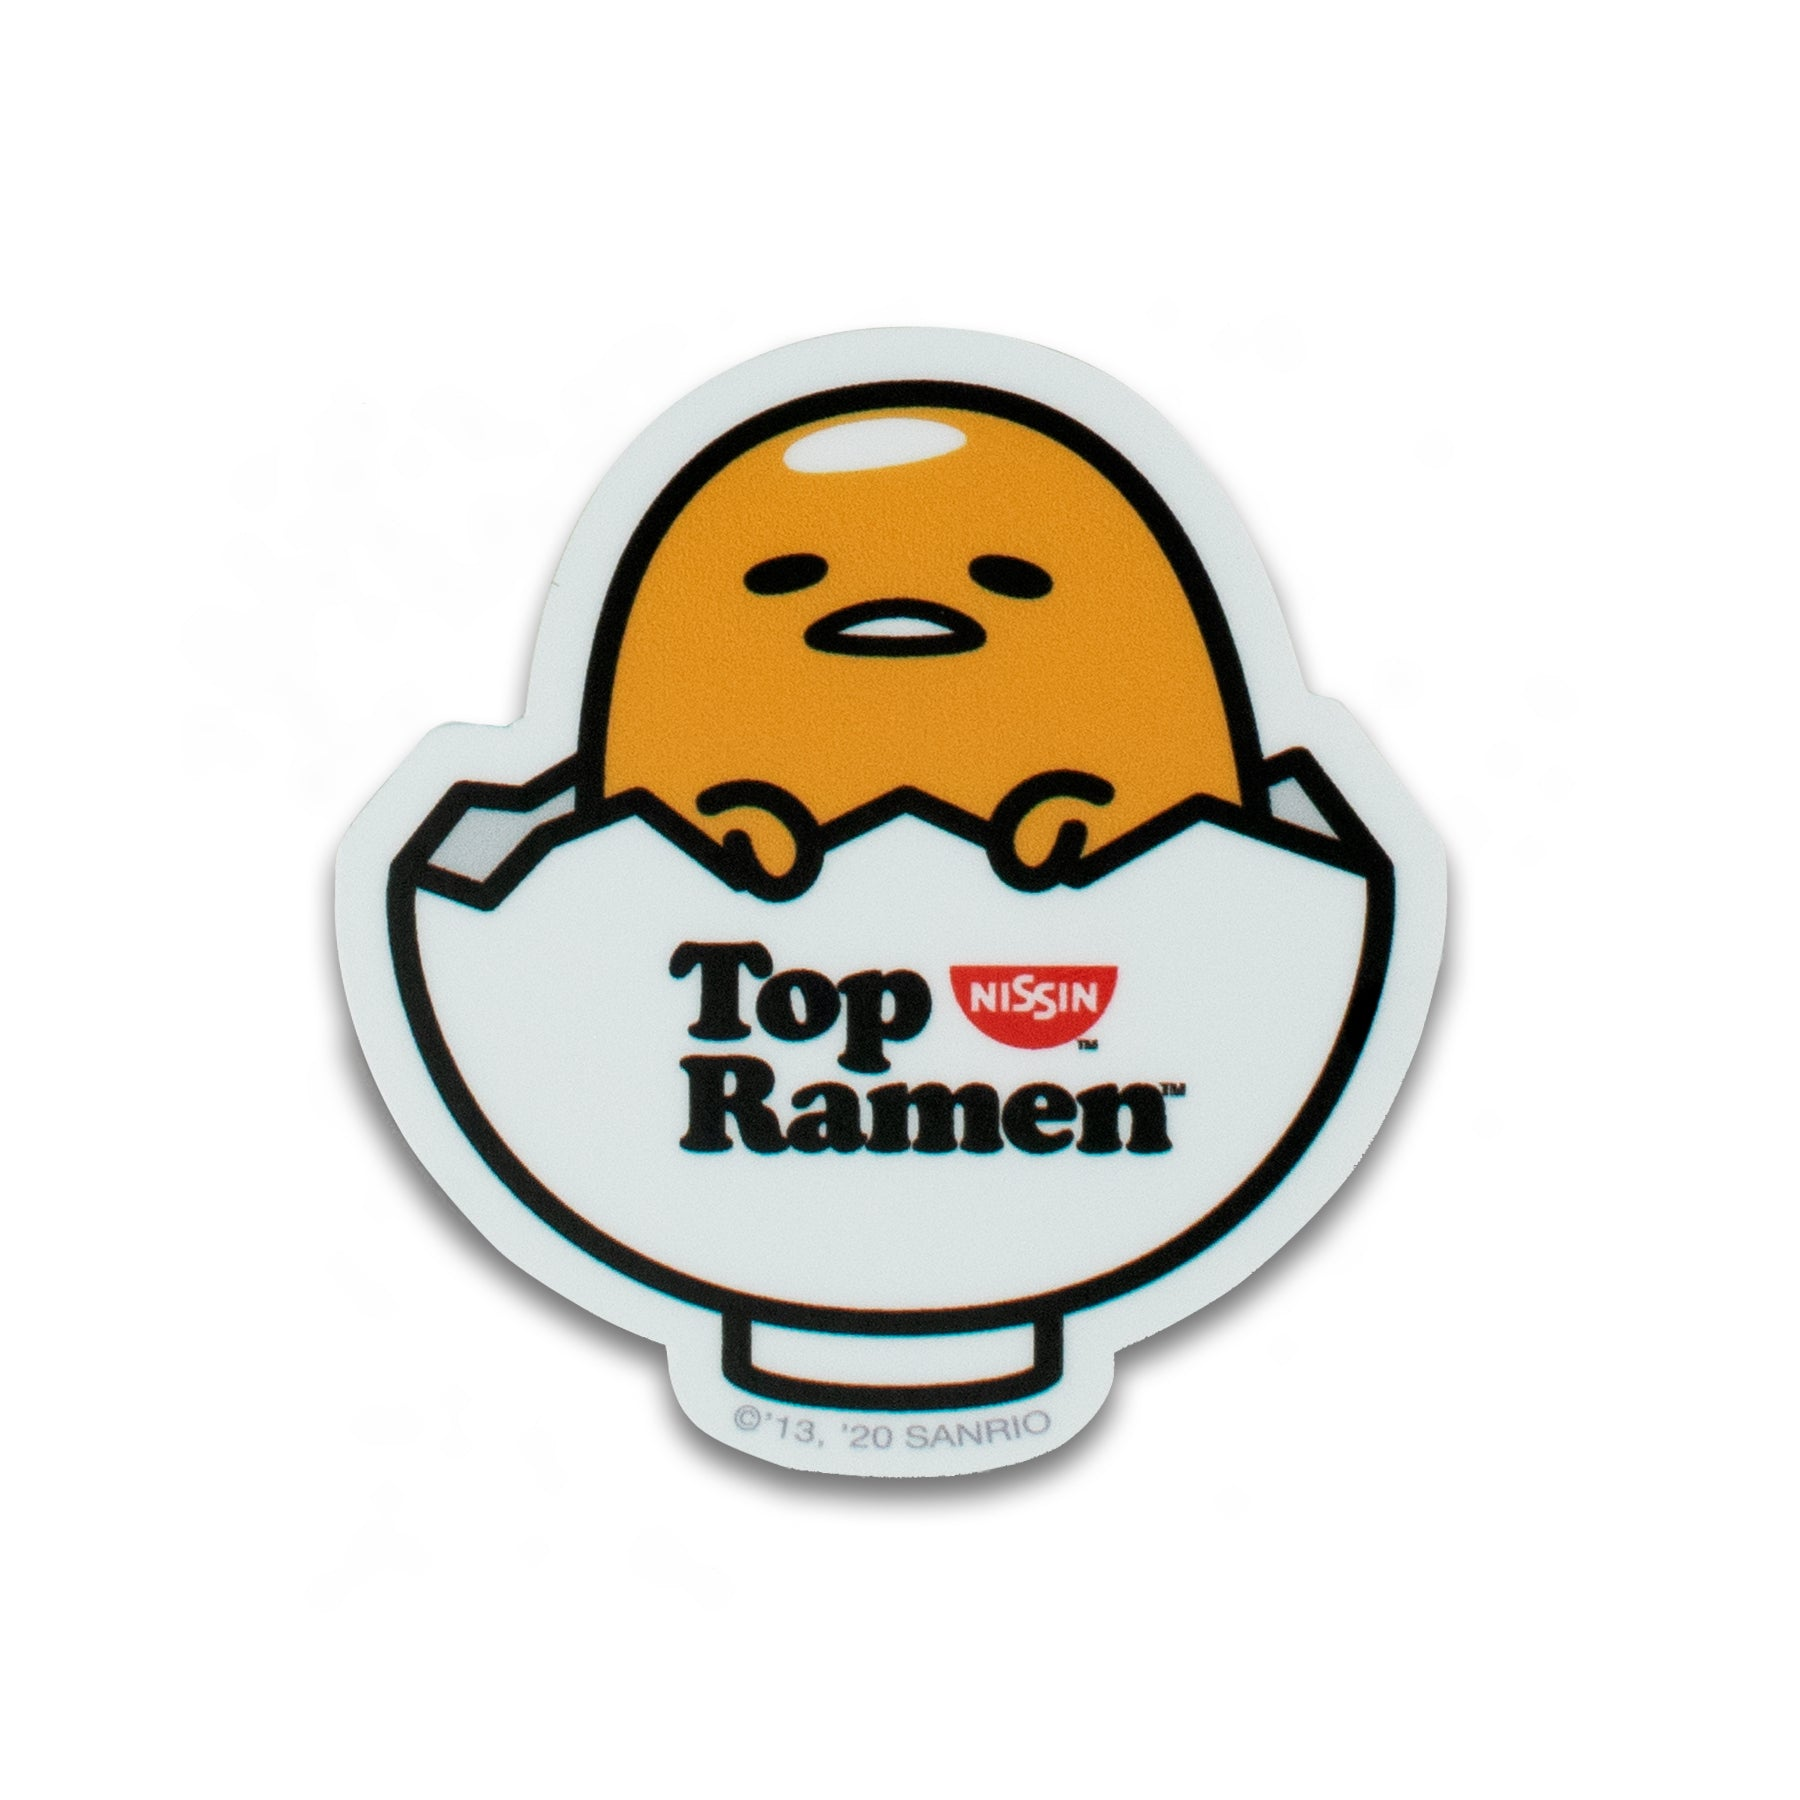 GUDETAMA X TOP RAMEN STICKER PACK #2